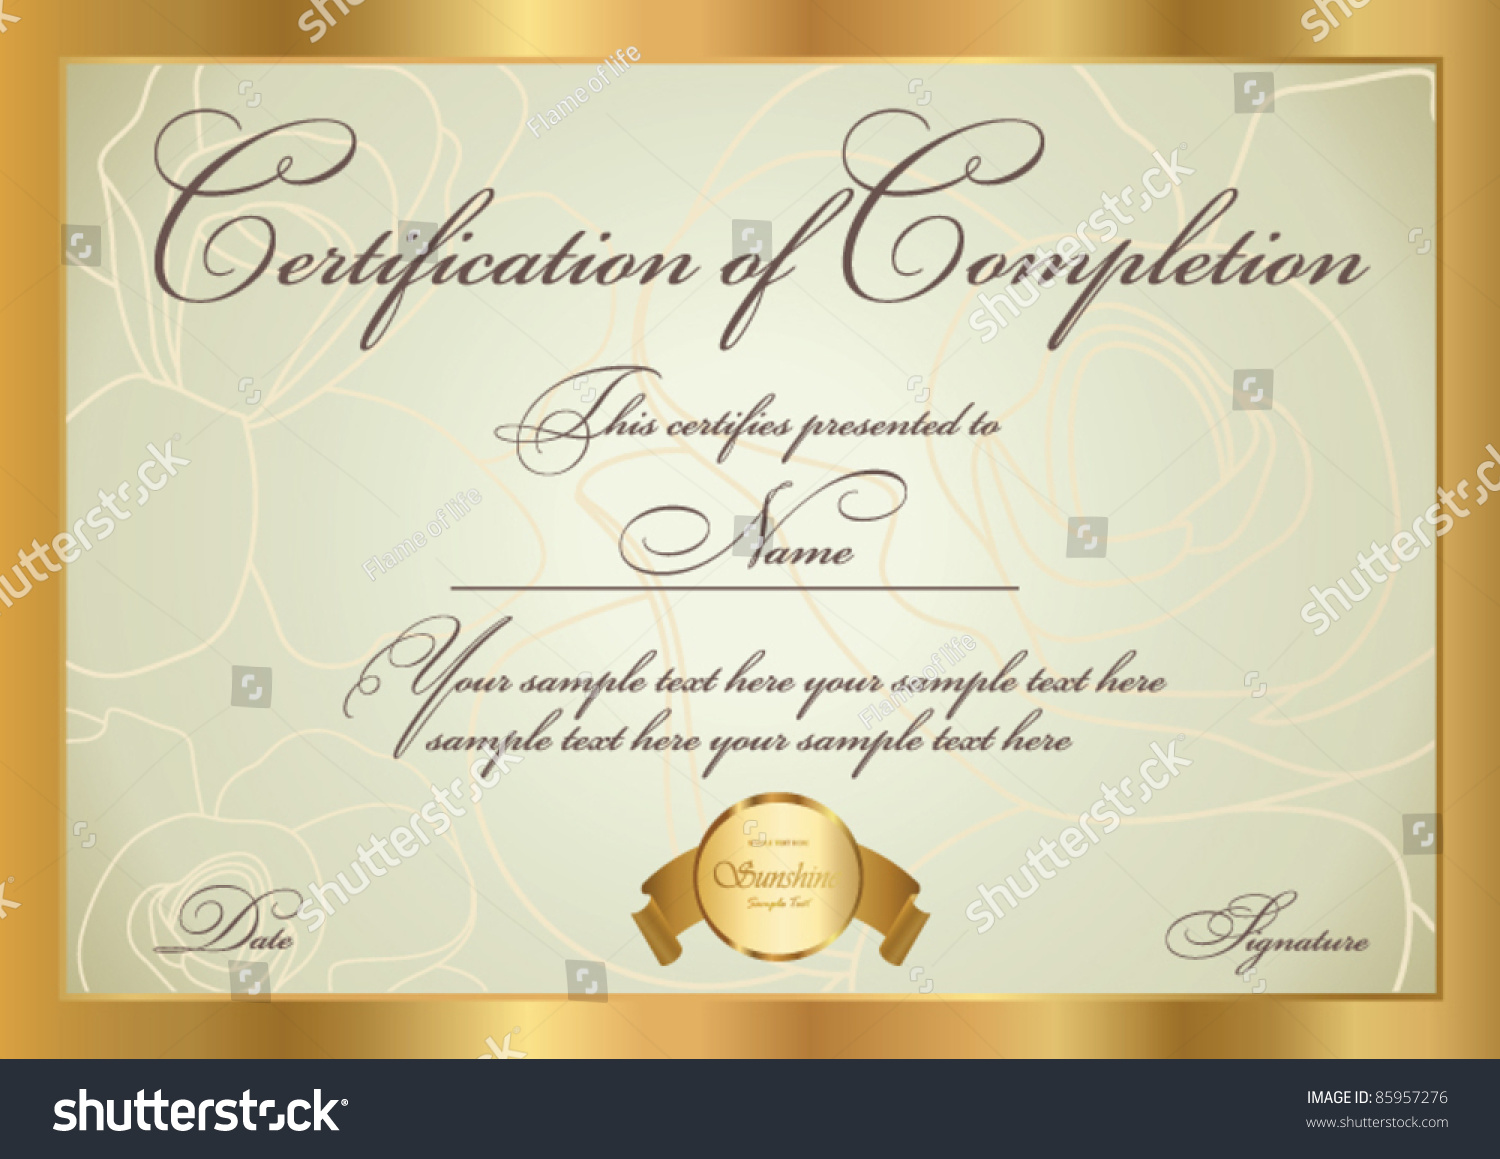 Royalty free horizontal certificate of completion 85957276 stock horizontal certificate of completion template with golden floral pattern and frame this design usable for xflitez Gallery